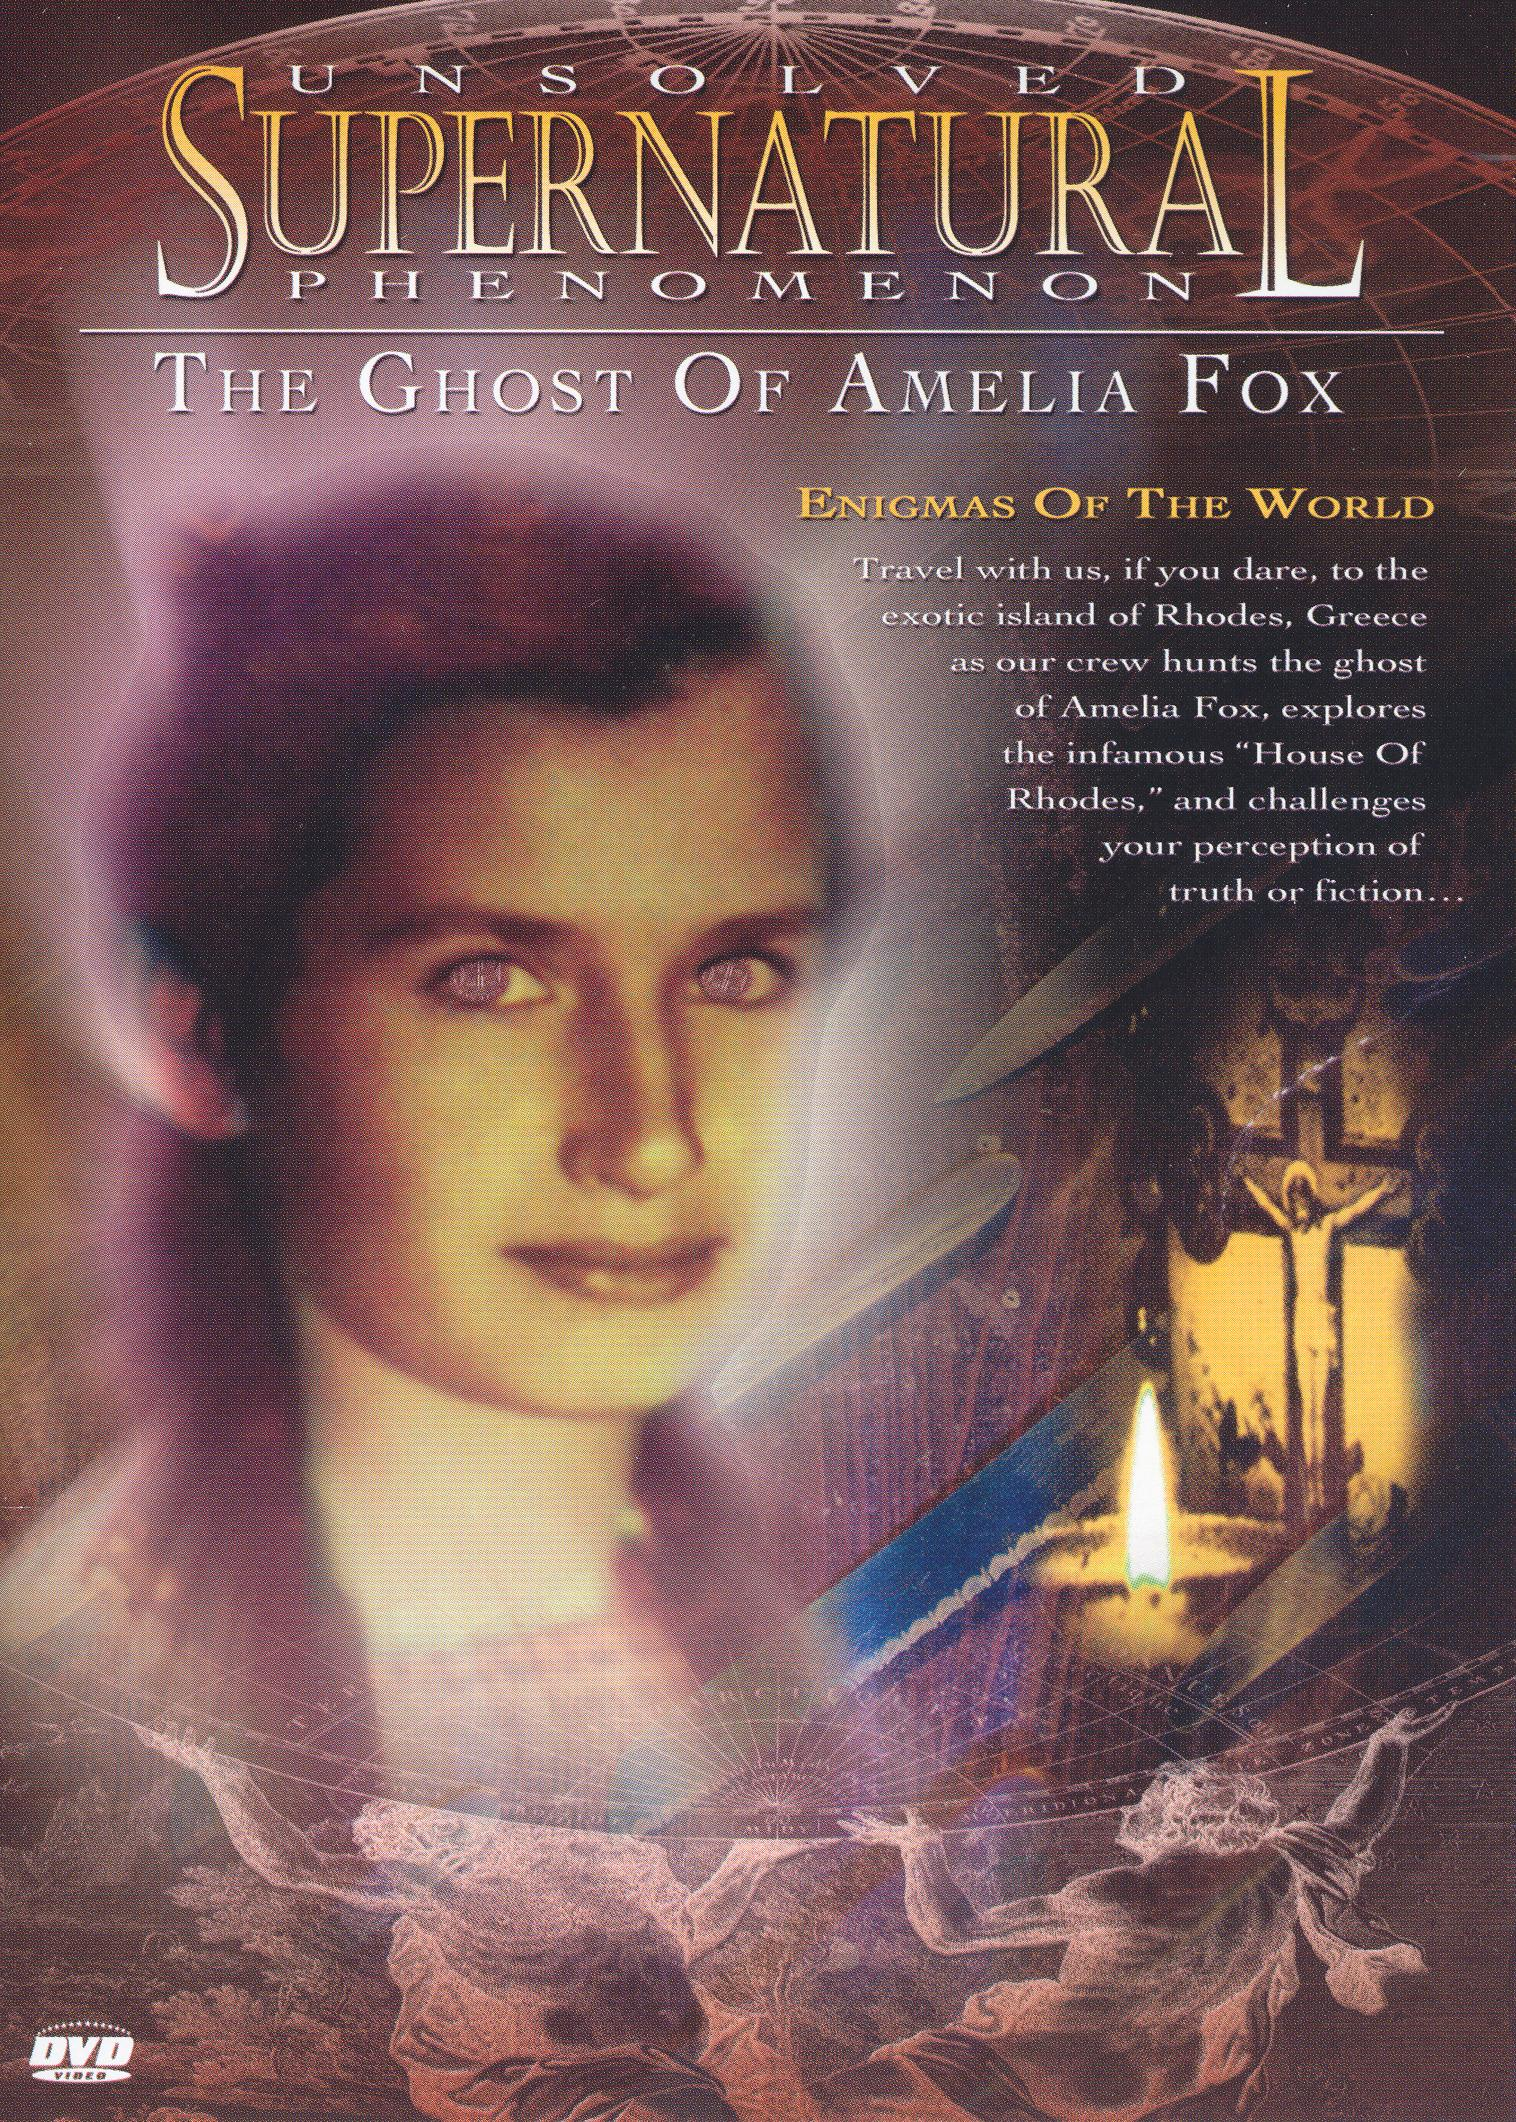 Unsolved Supernatural Phenomenon: The Ghost of Amelia Fox